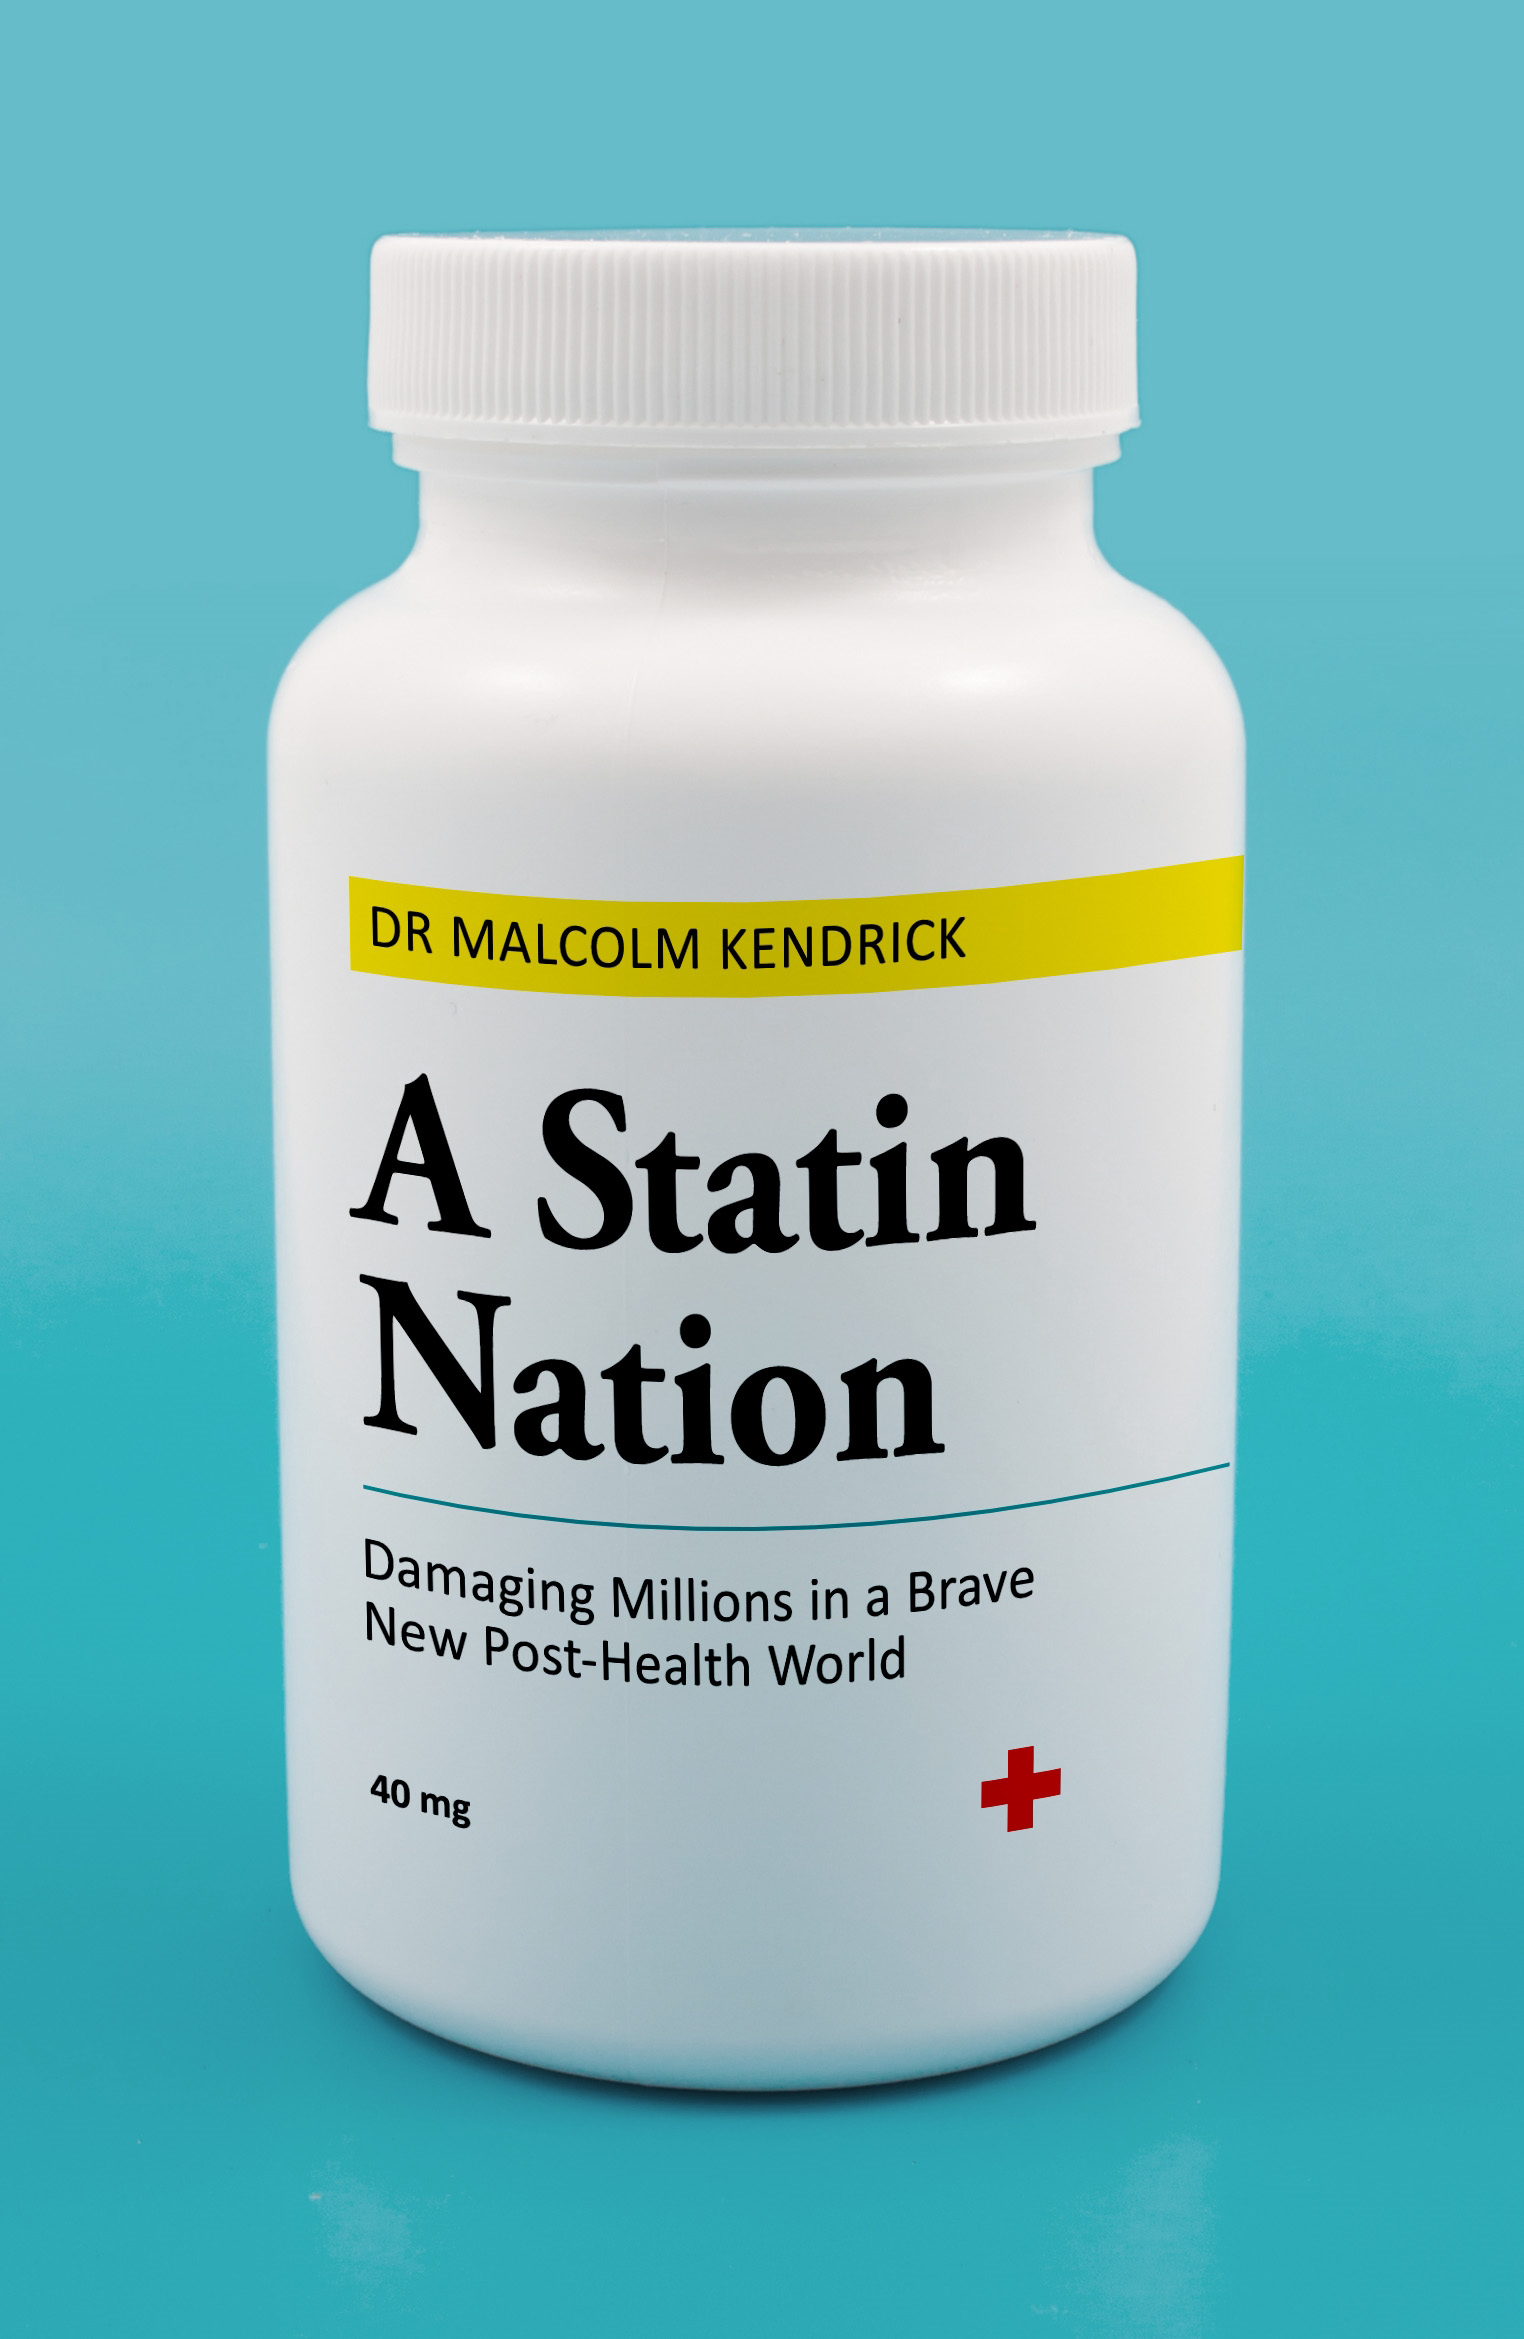 A Statin NationDamaging Millions in a Brave New Post-health World